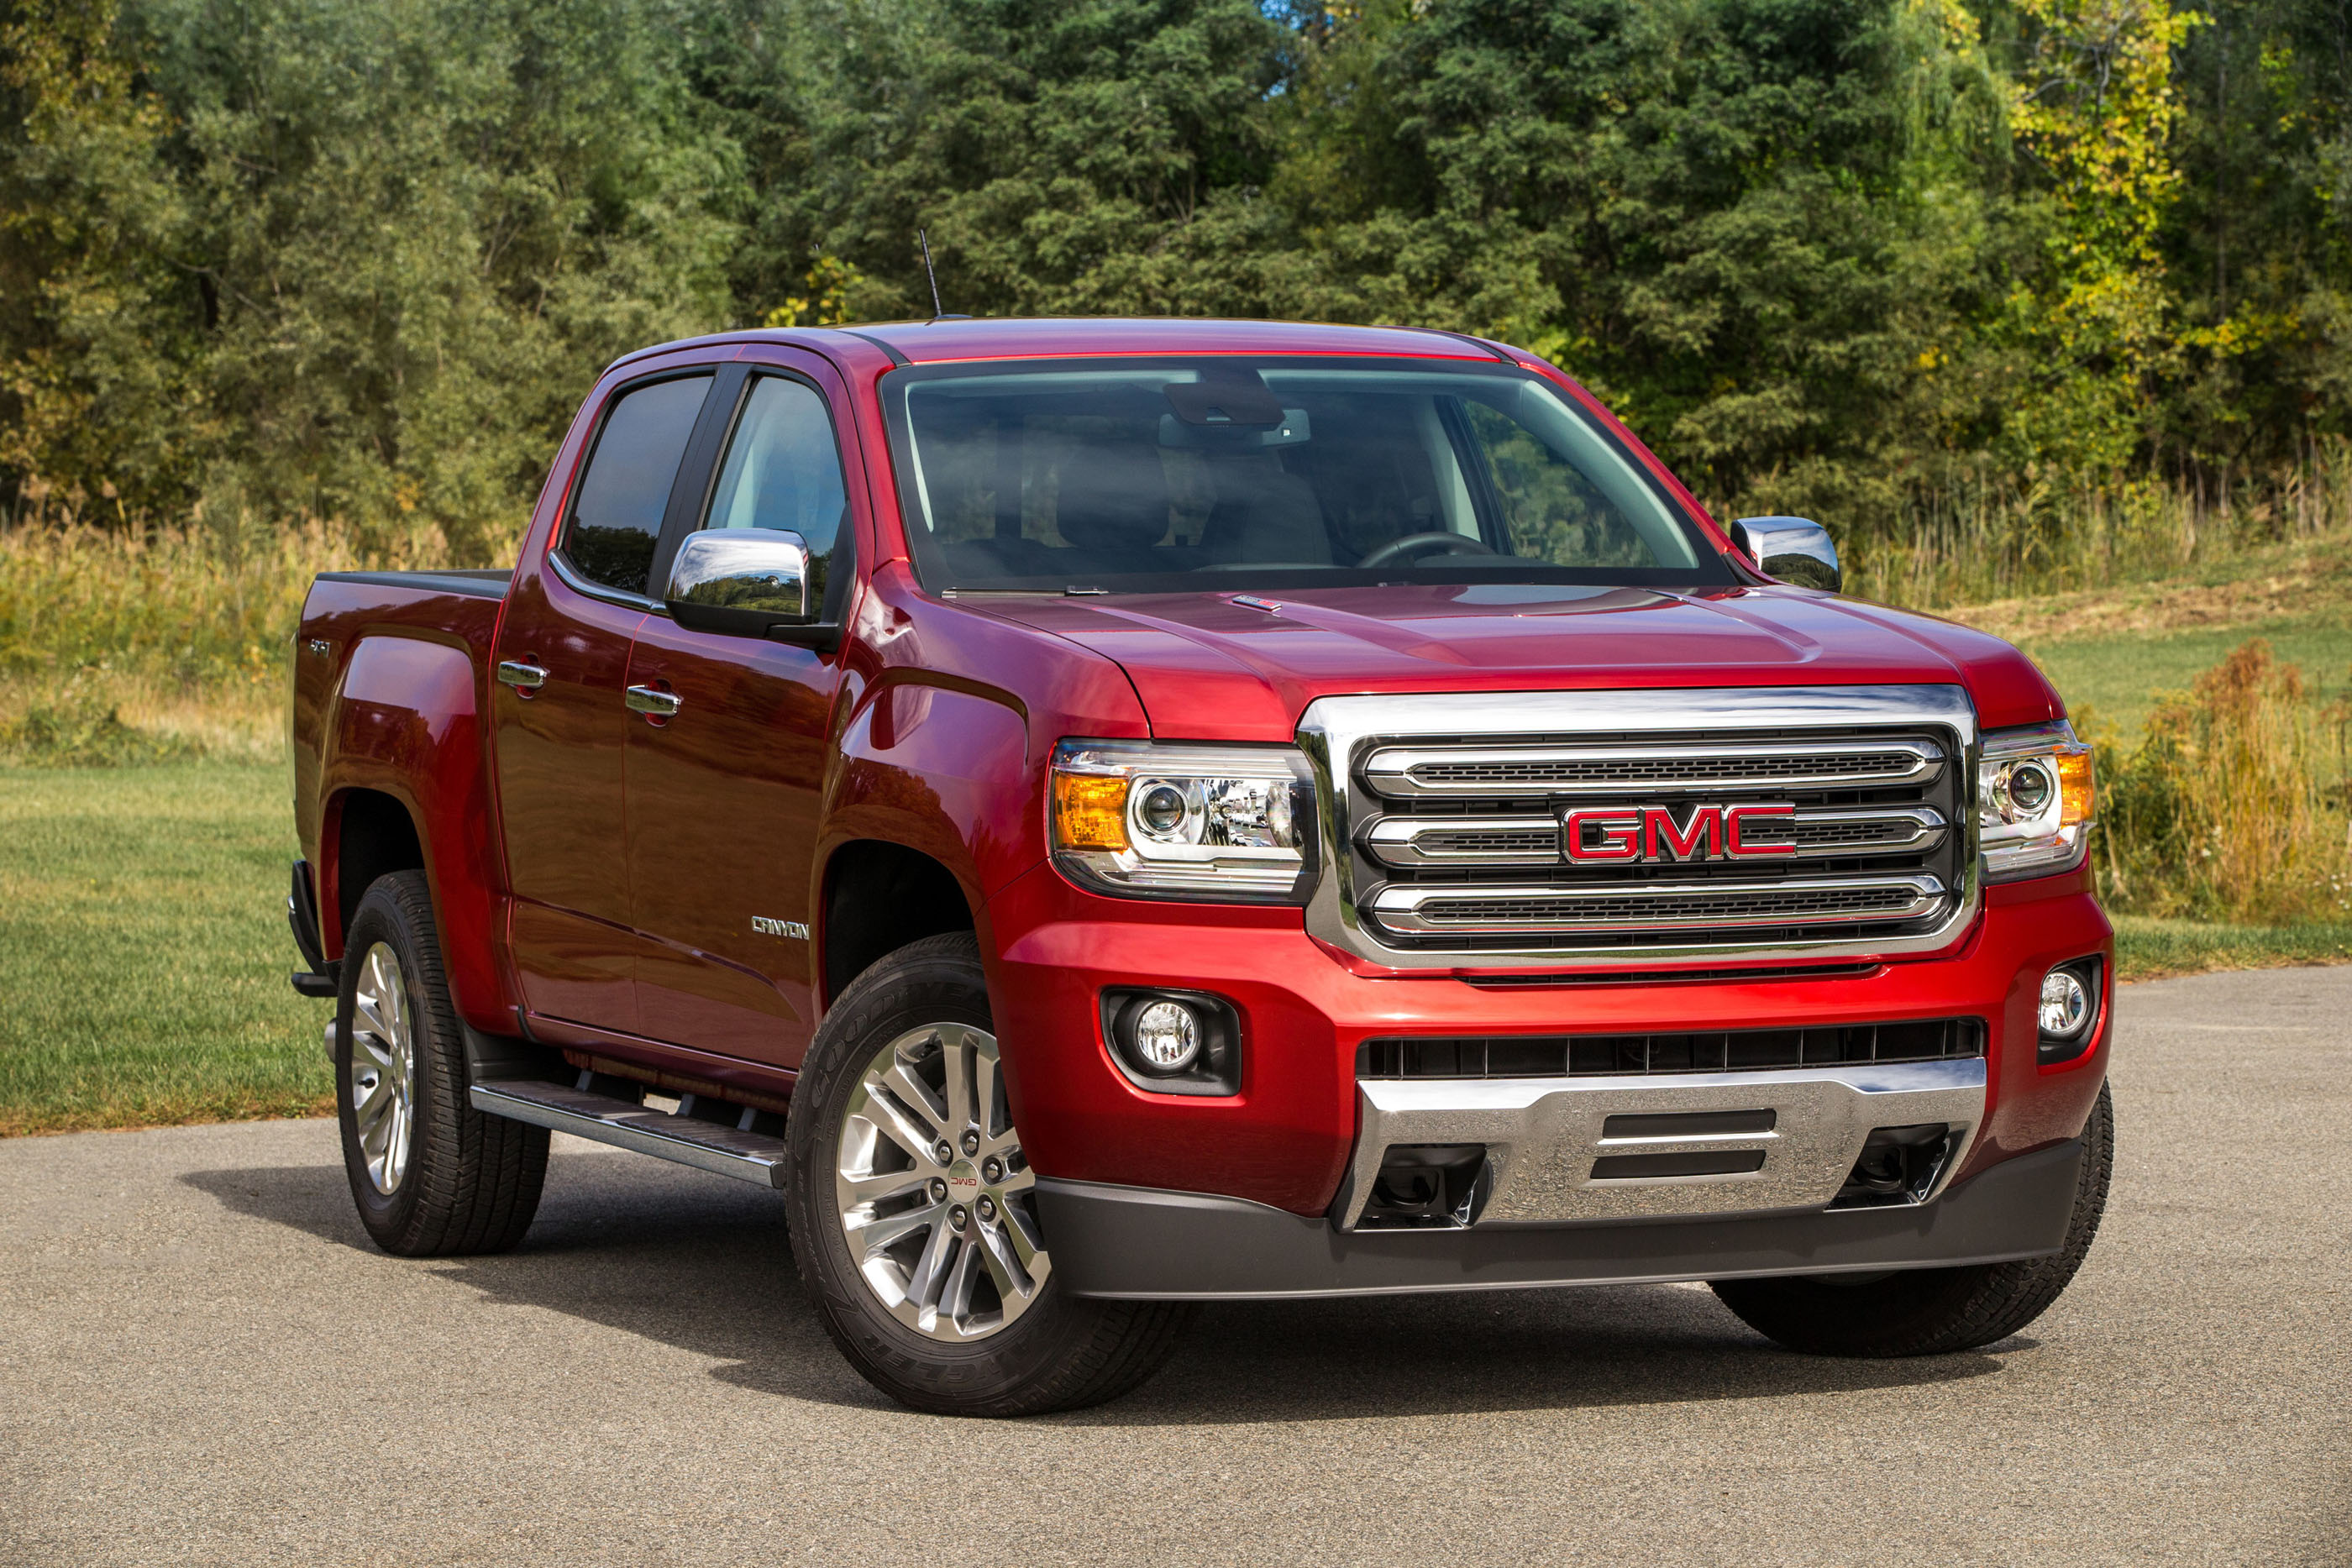 2017 gmc canyon safety review and crash test ratings   the car